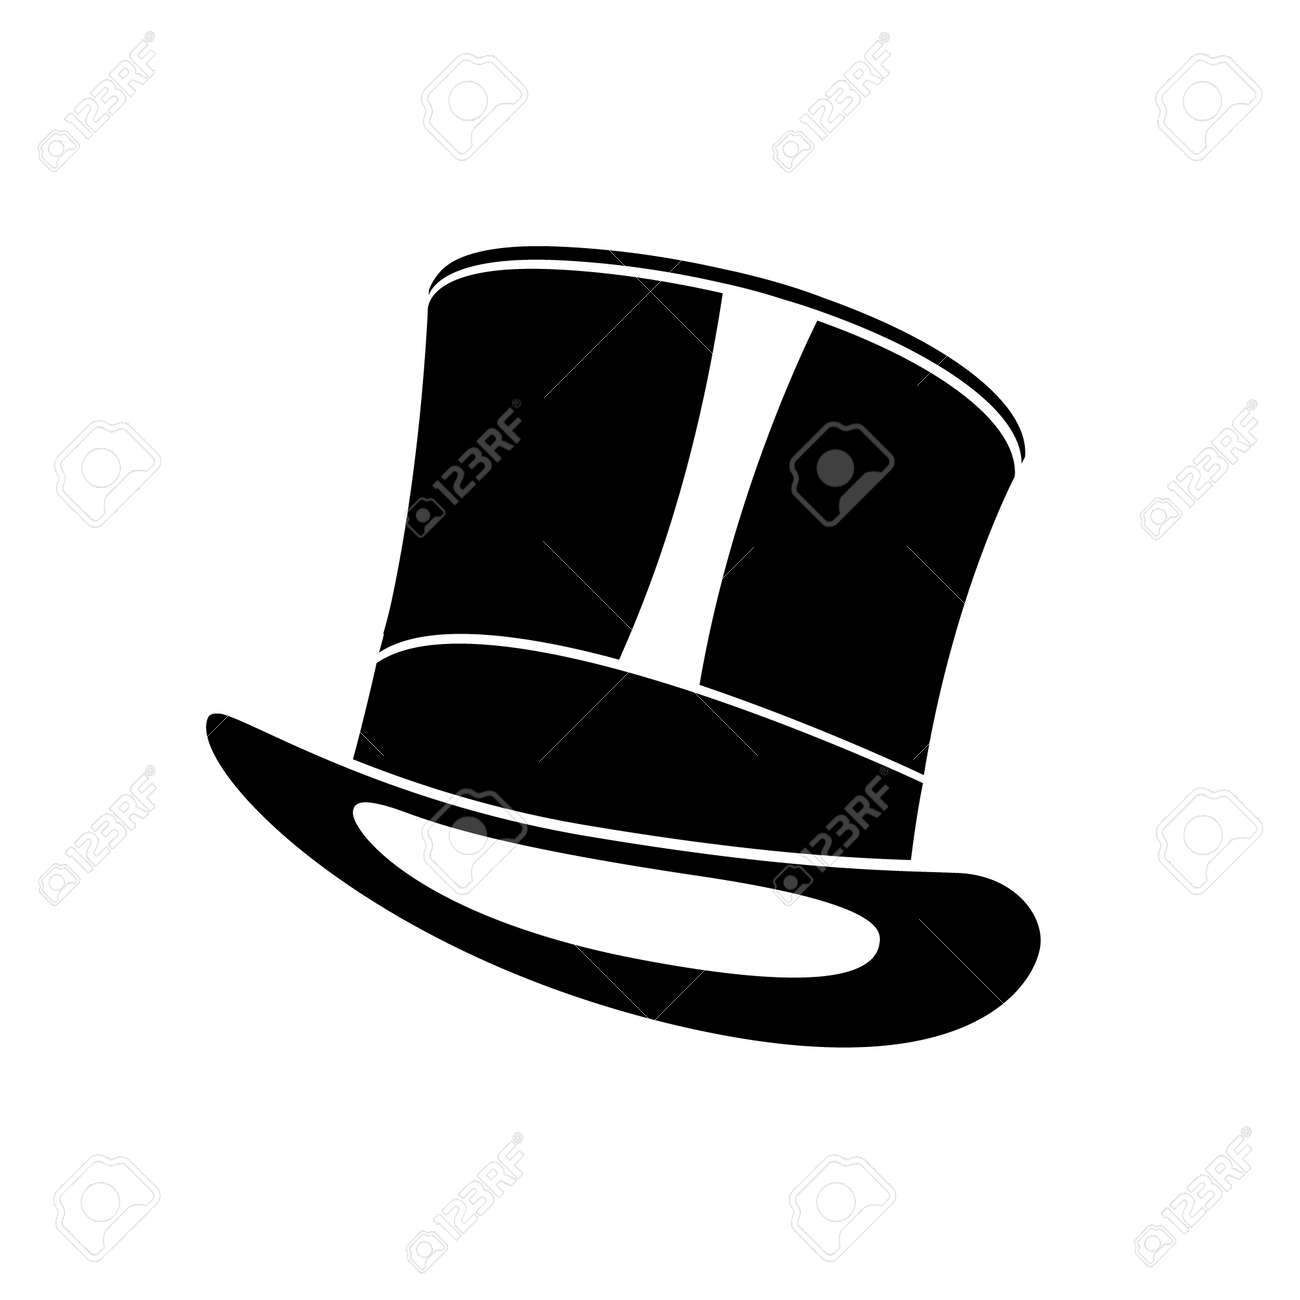 2c040d7e5a3 Black retro top hat. Gentleman cylinder hat vector illustration. Stock  Vector - 110353625